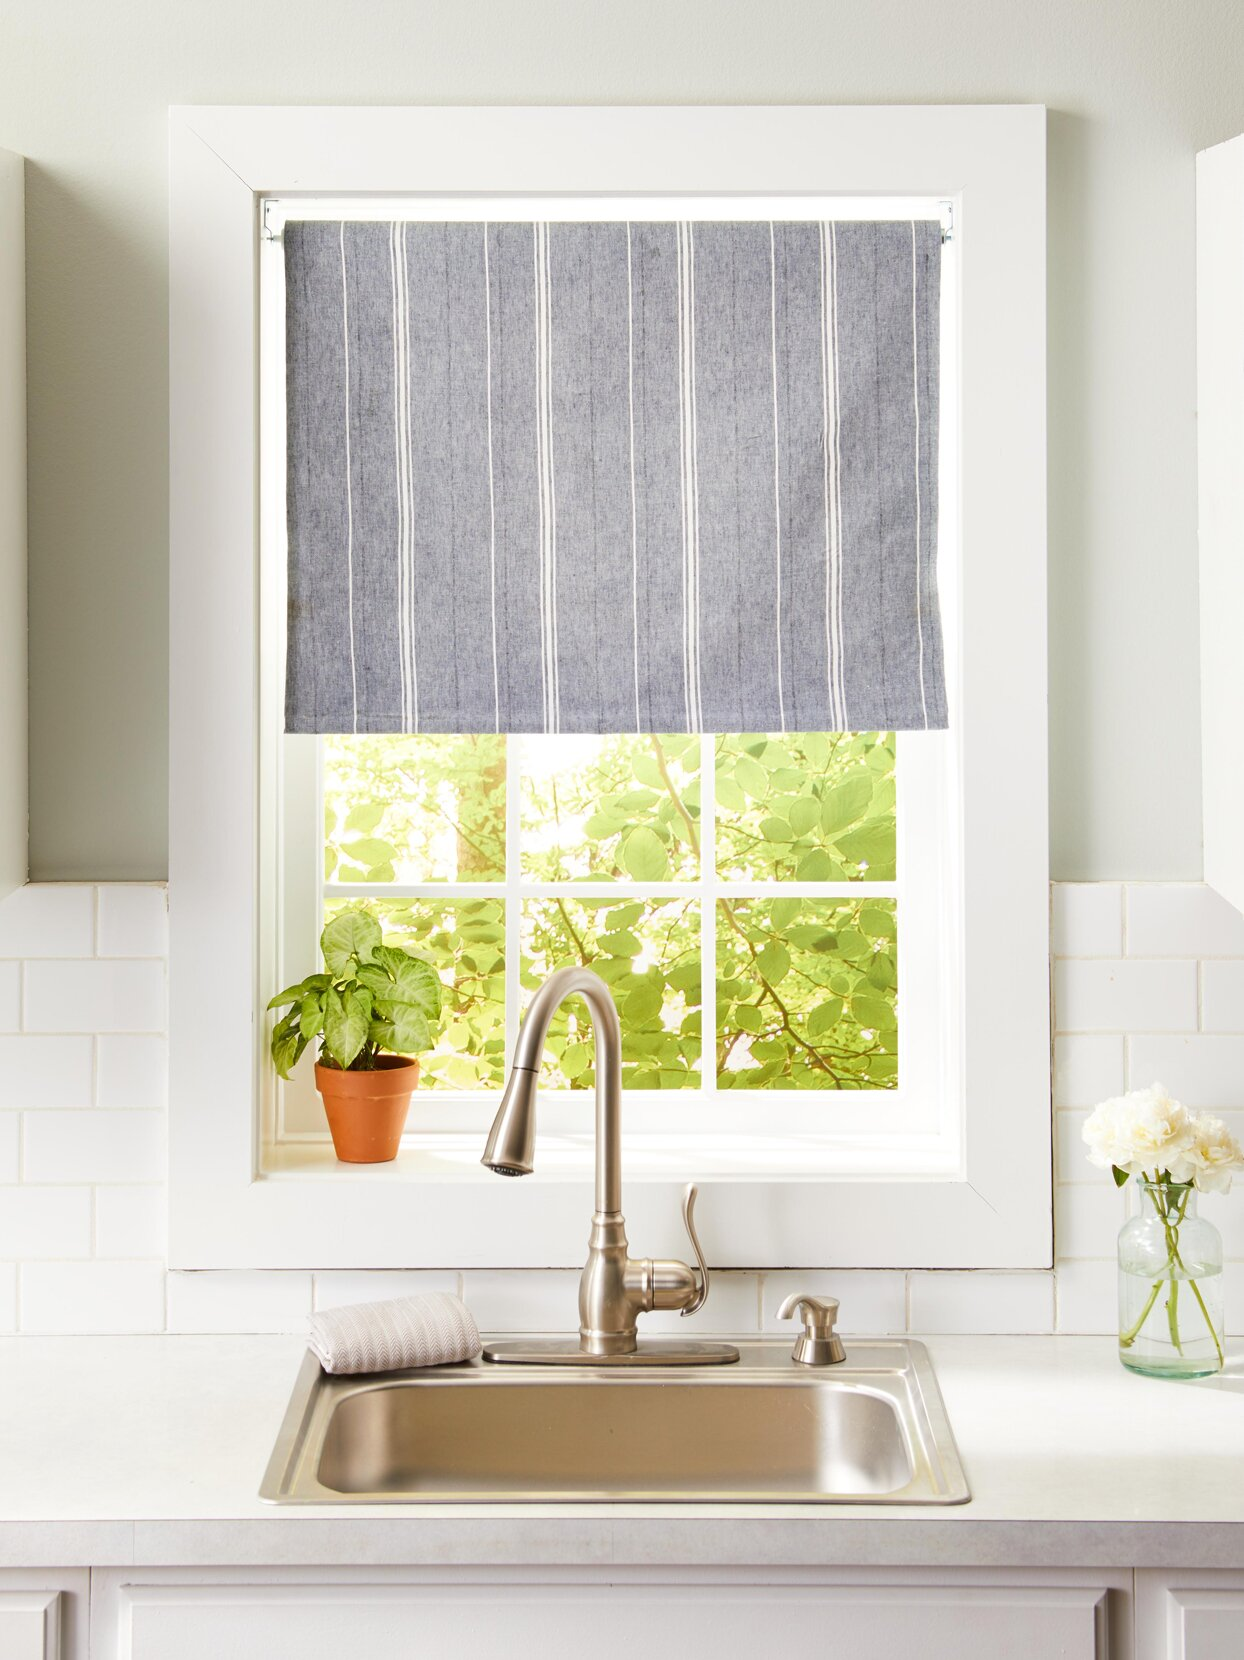 9 DIY Kitchen Window Treatments for an Easy Refresh   Better ...